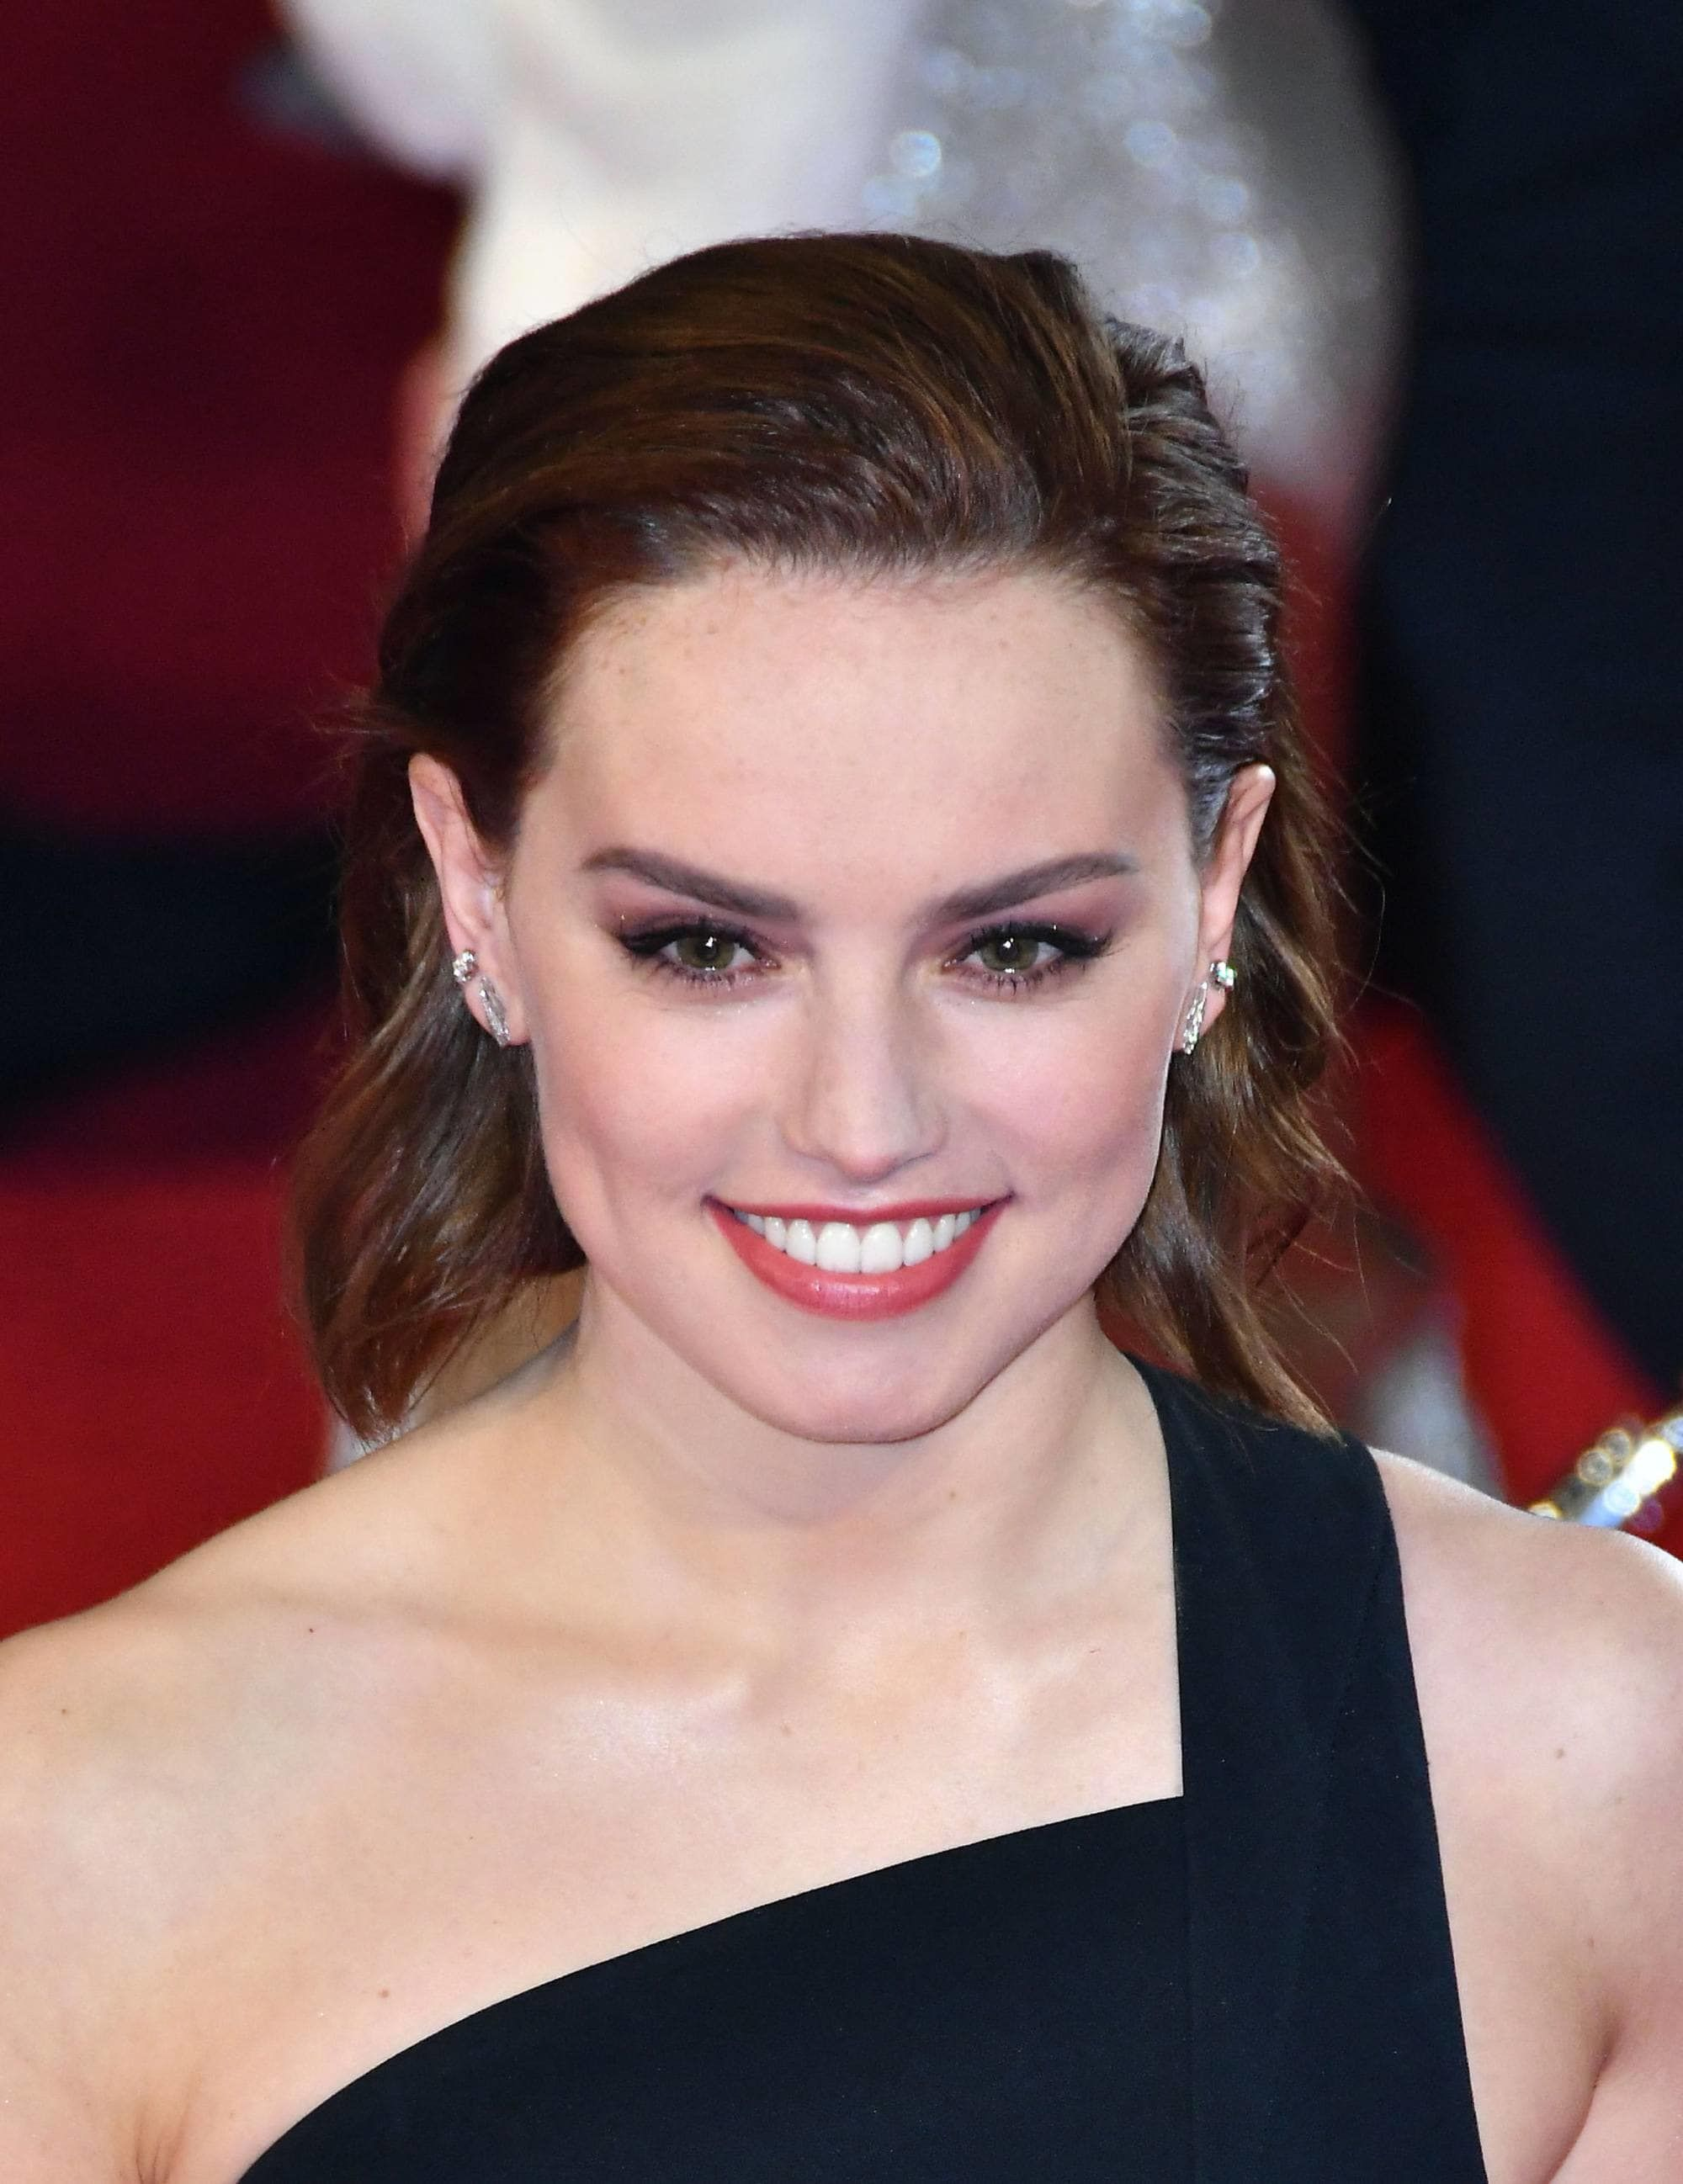 Hacked Daisy Ridley nudes (58 foto and video), Ass, Bikini, Twitter, cleavage 2019